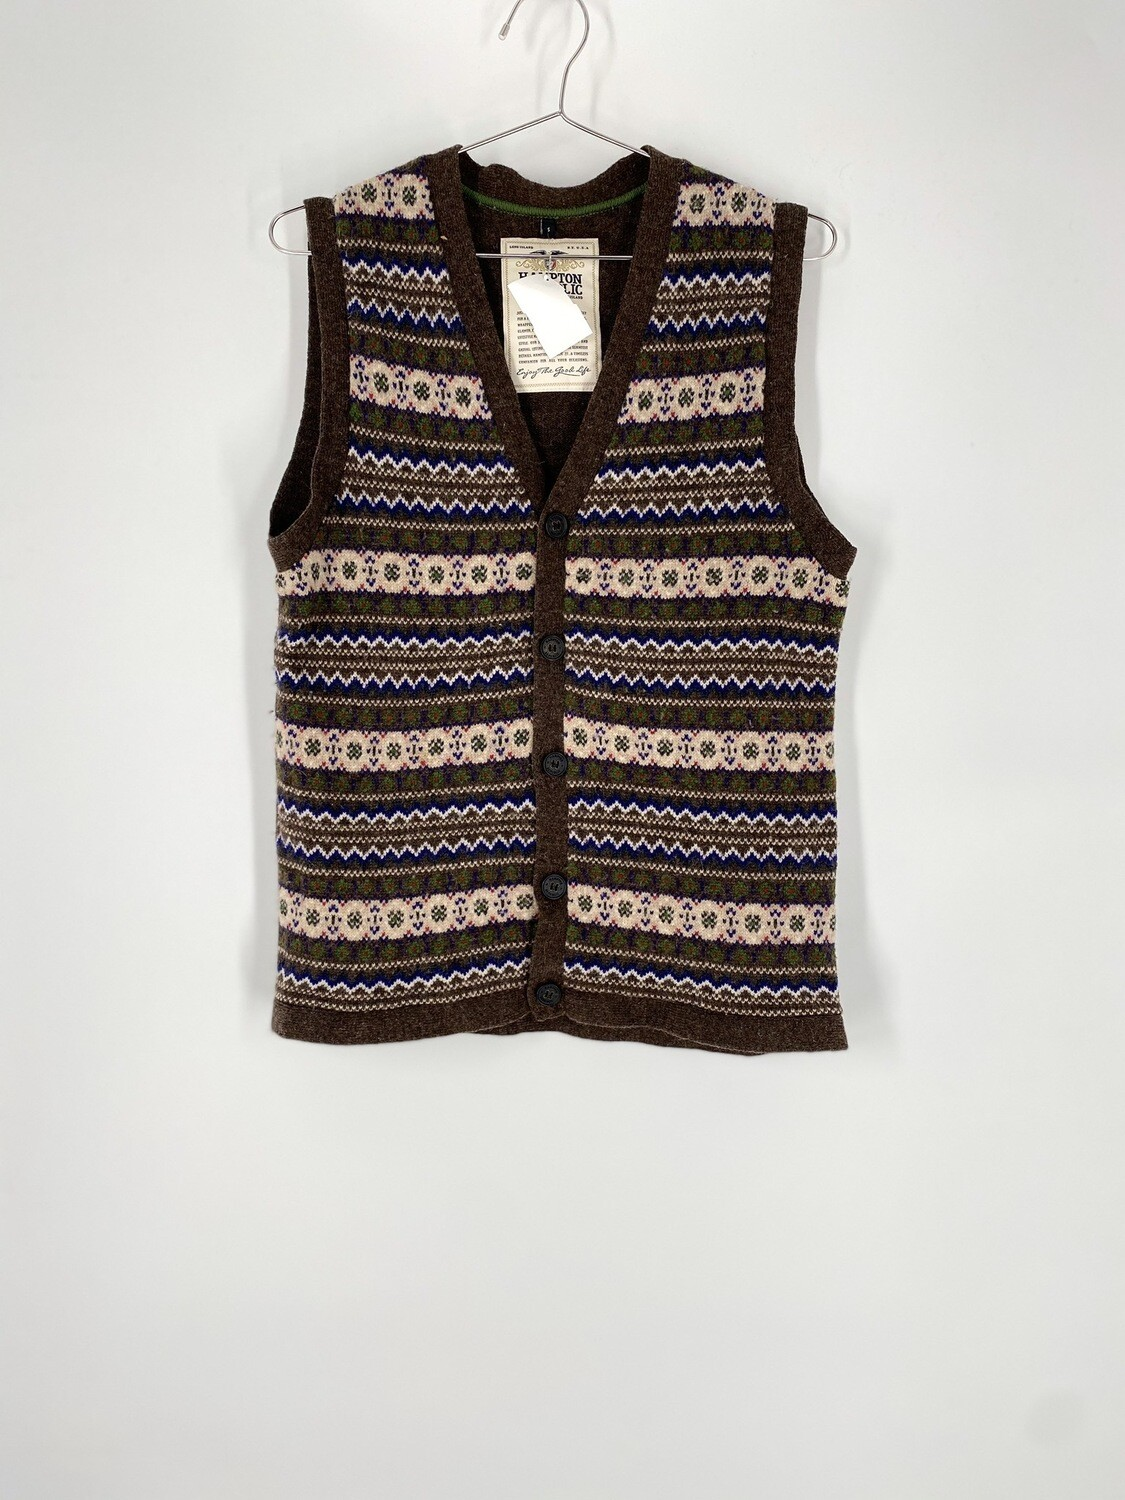 Printed Wool Sweater Vest Size S